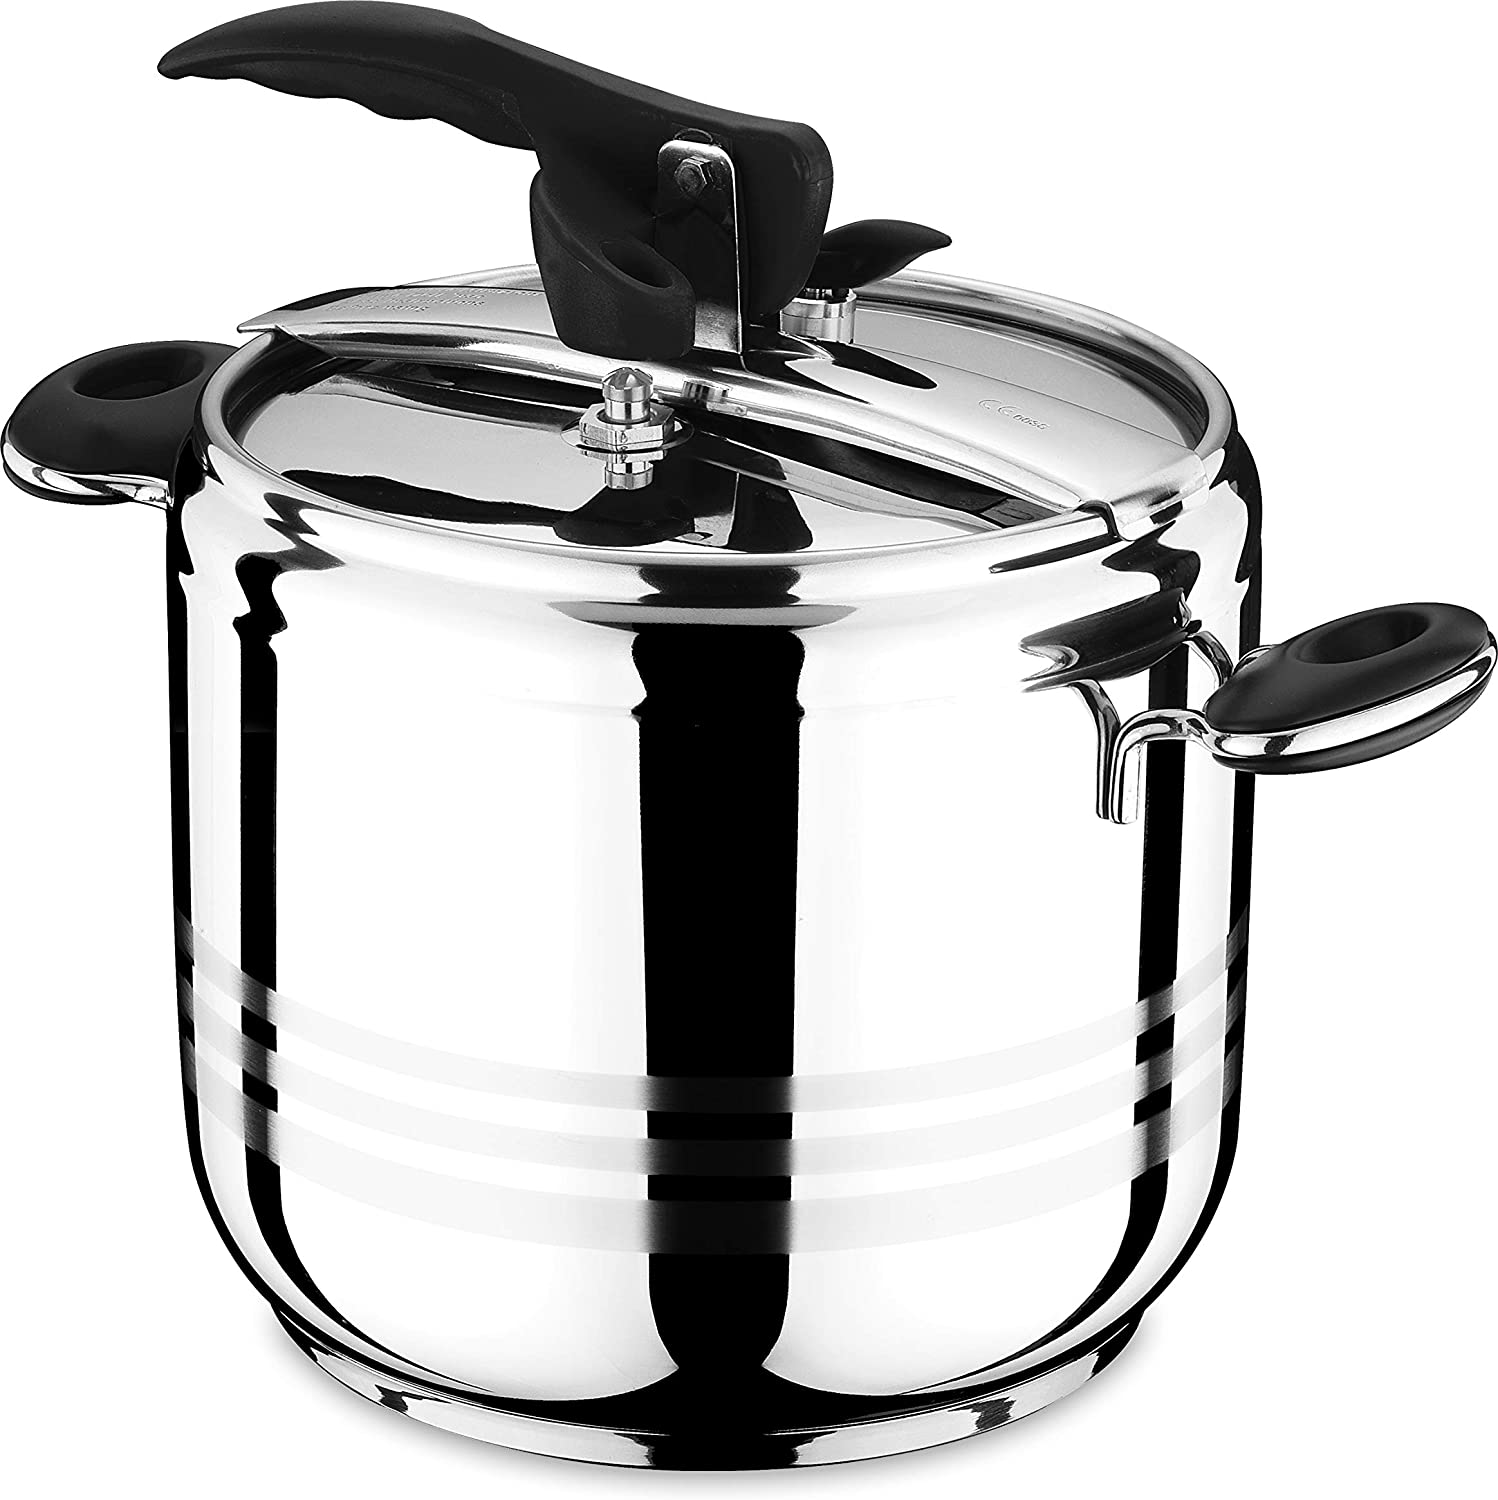 Esila Black Stainless Steel Stockpot Induction Base Pressure Cooker 5L 7L/9